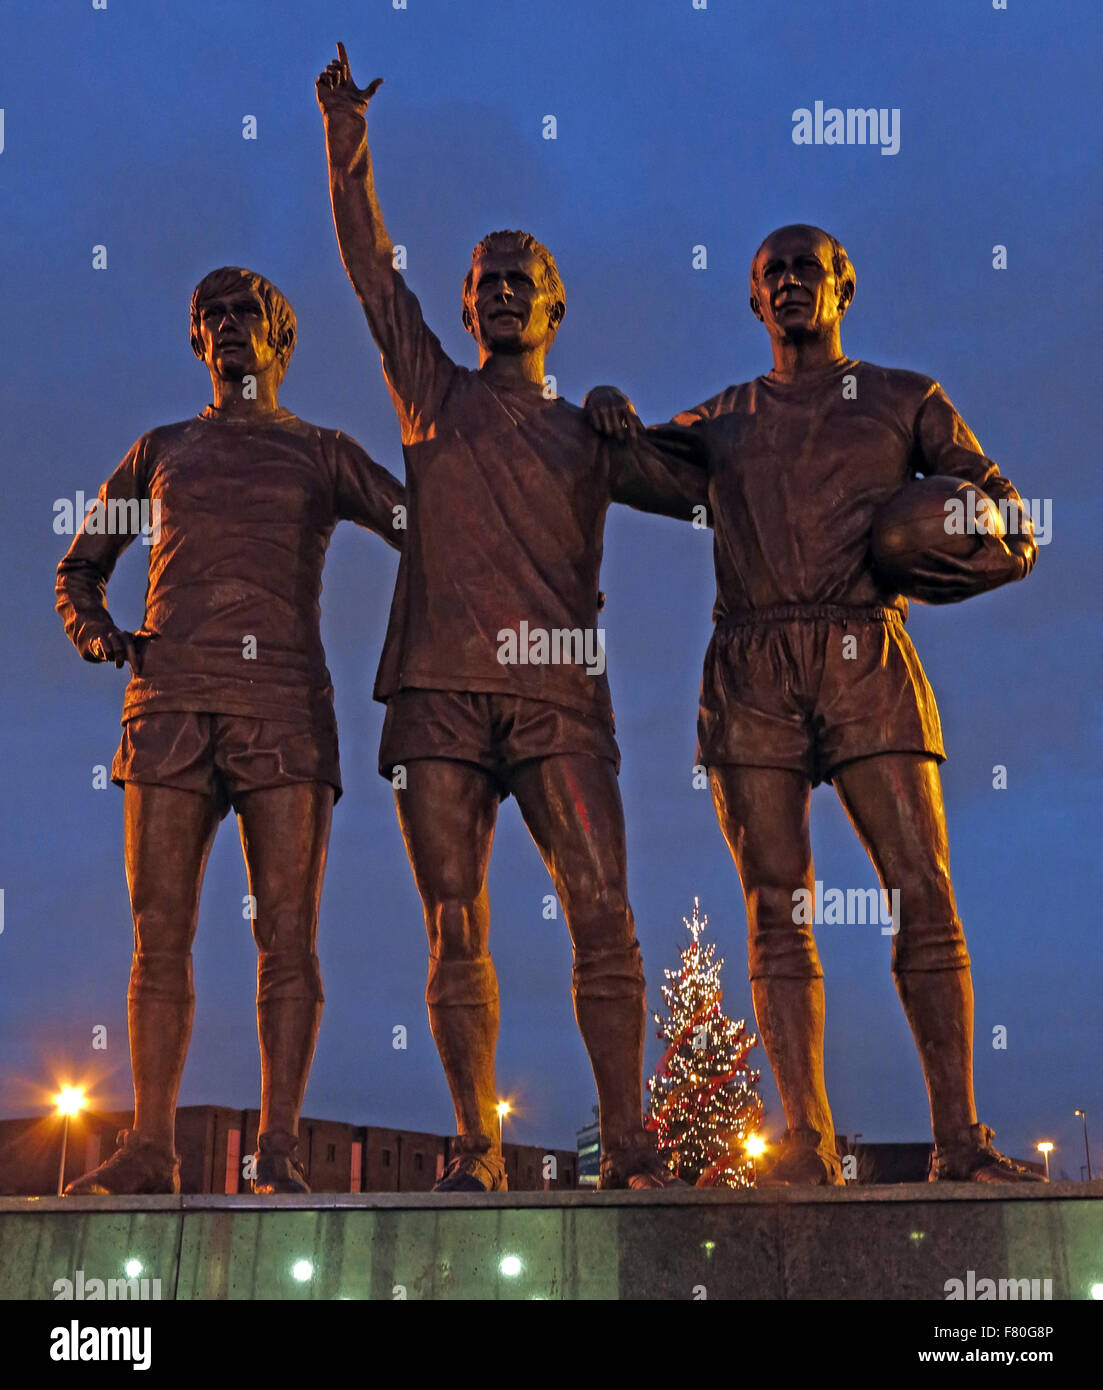 United Trinity/Holy Trinity statue of Manchester United trio of George Best, Denis Law, and Bobby Charlton at dusk - Stock Image